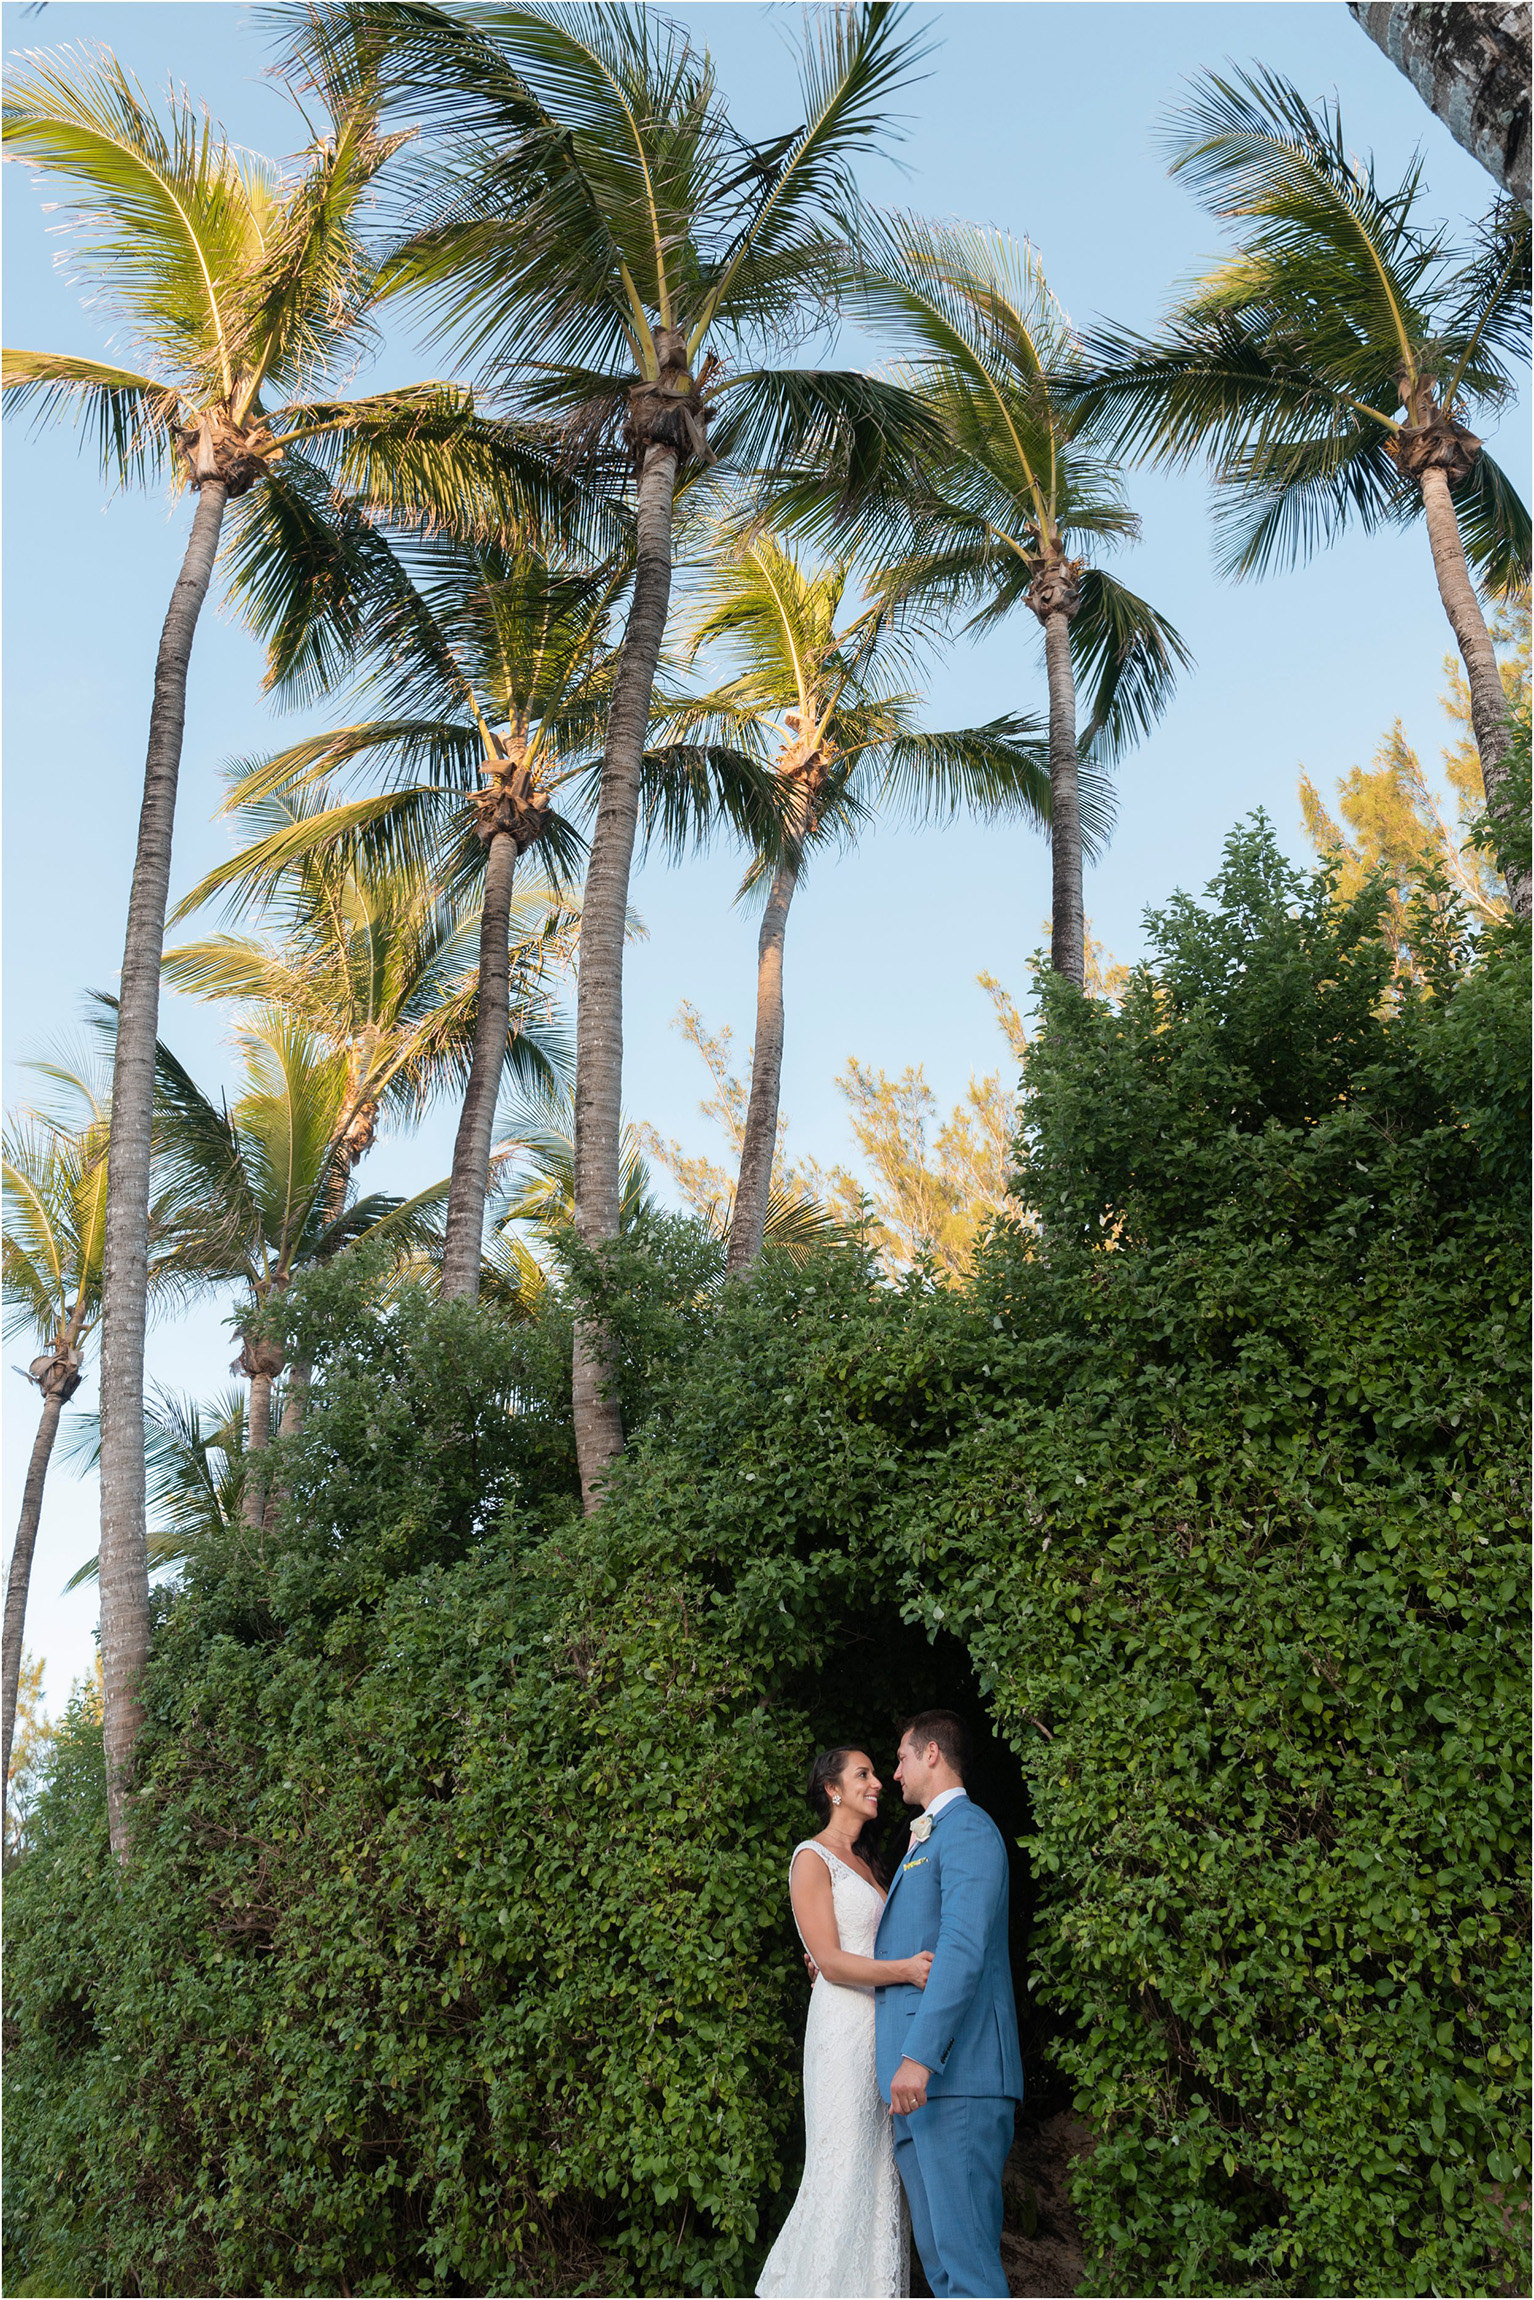 ©FianderFoto_Bermuda Wedding Photographer_Fairmont Southampton_Wedding_Anna_Thomas_097.jpg